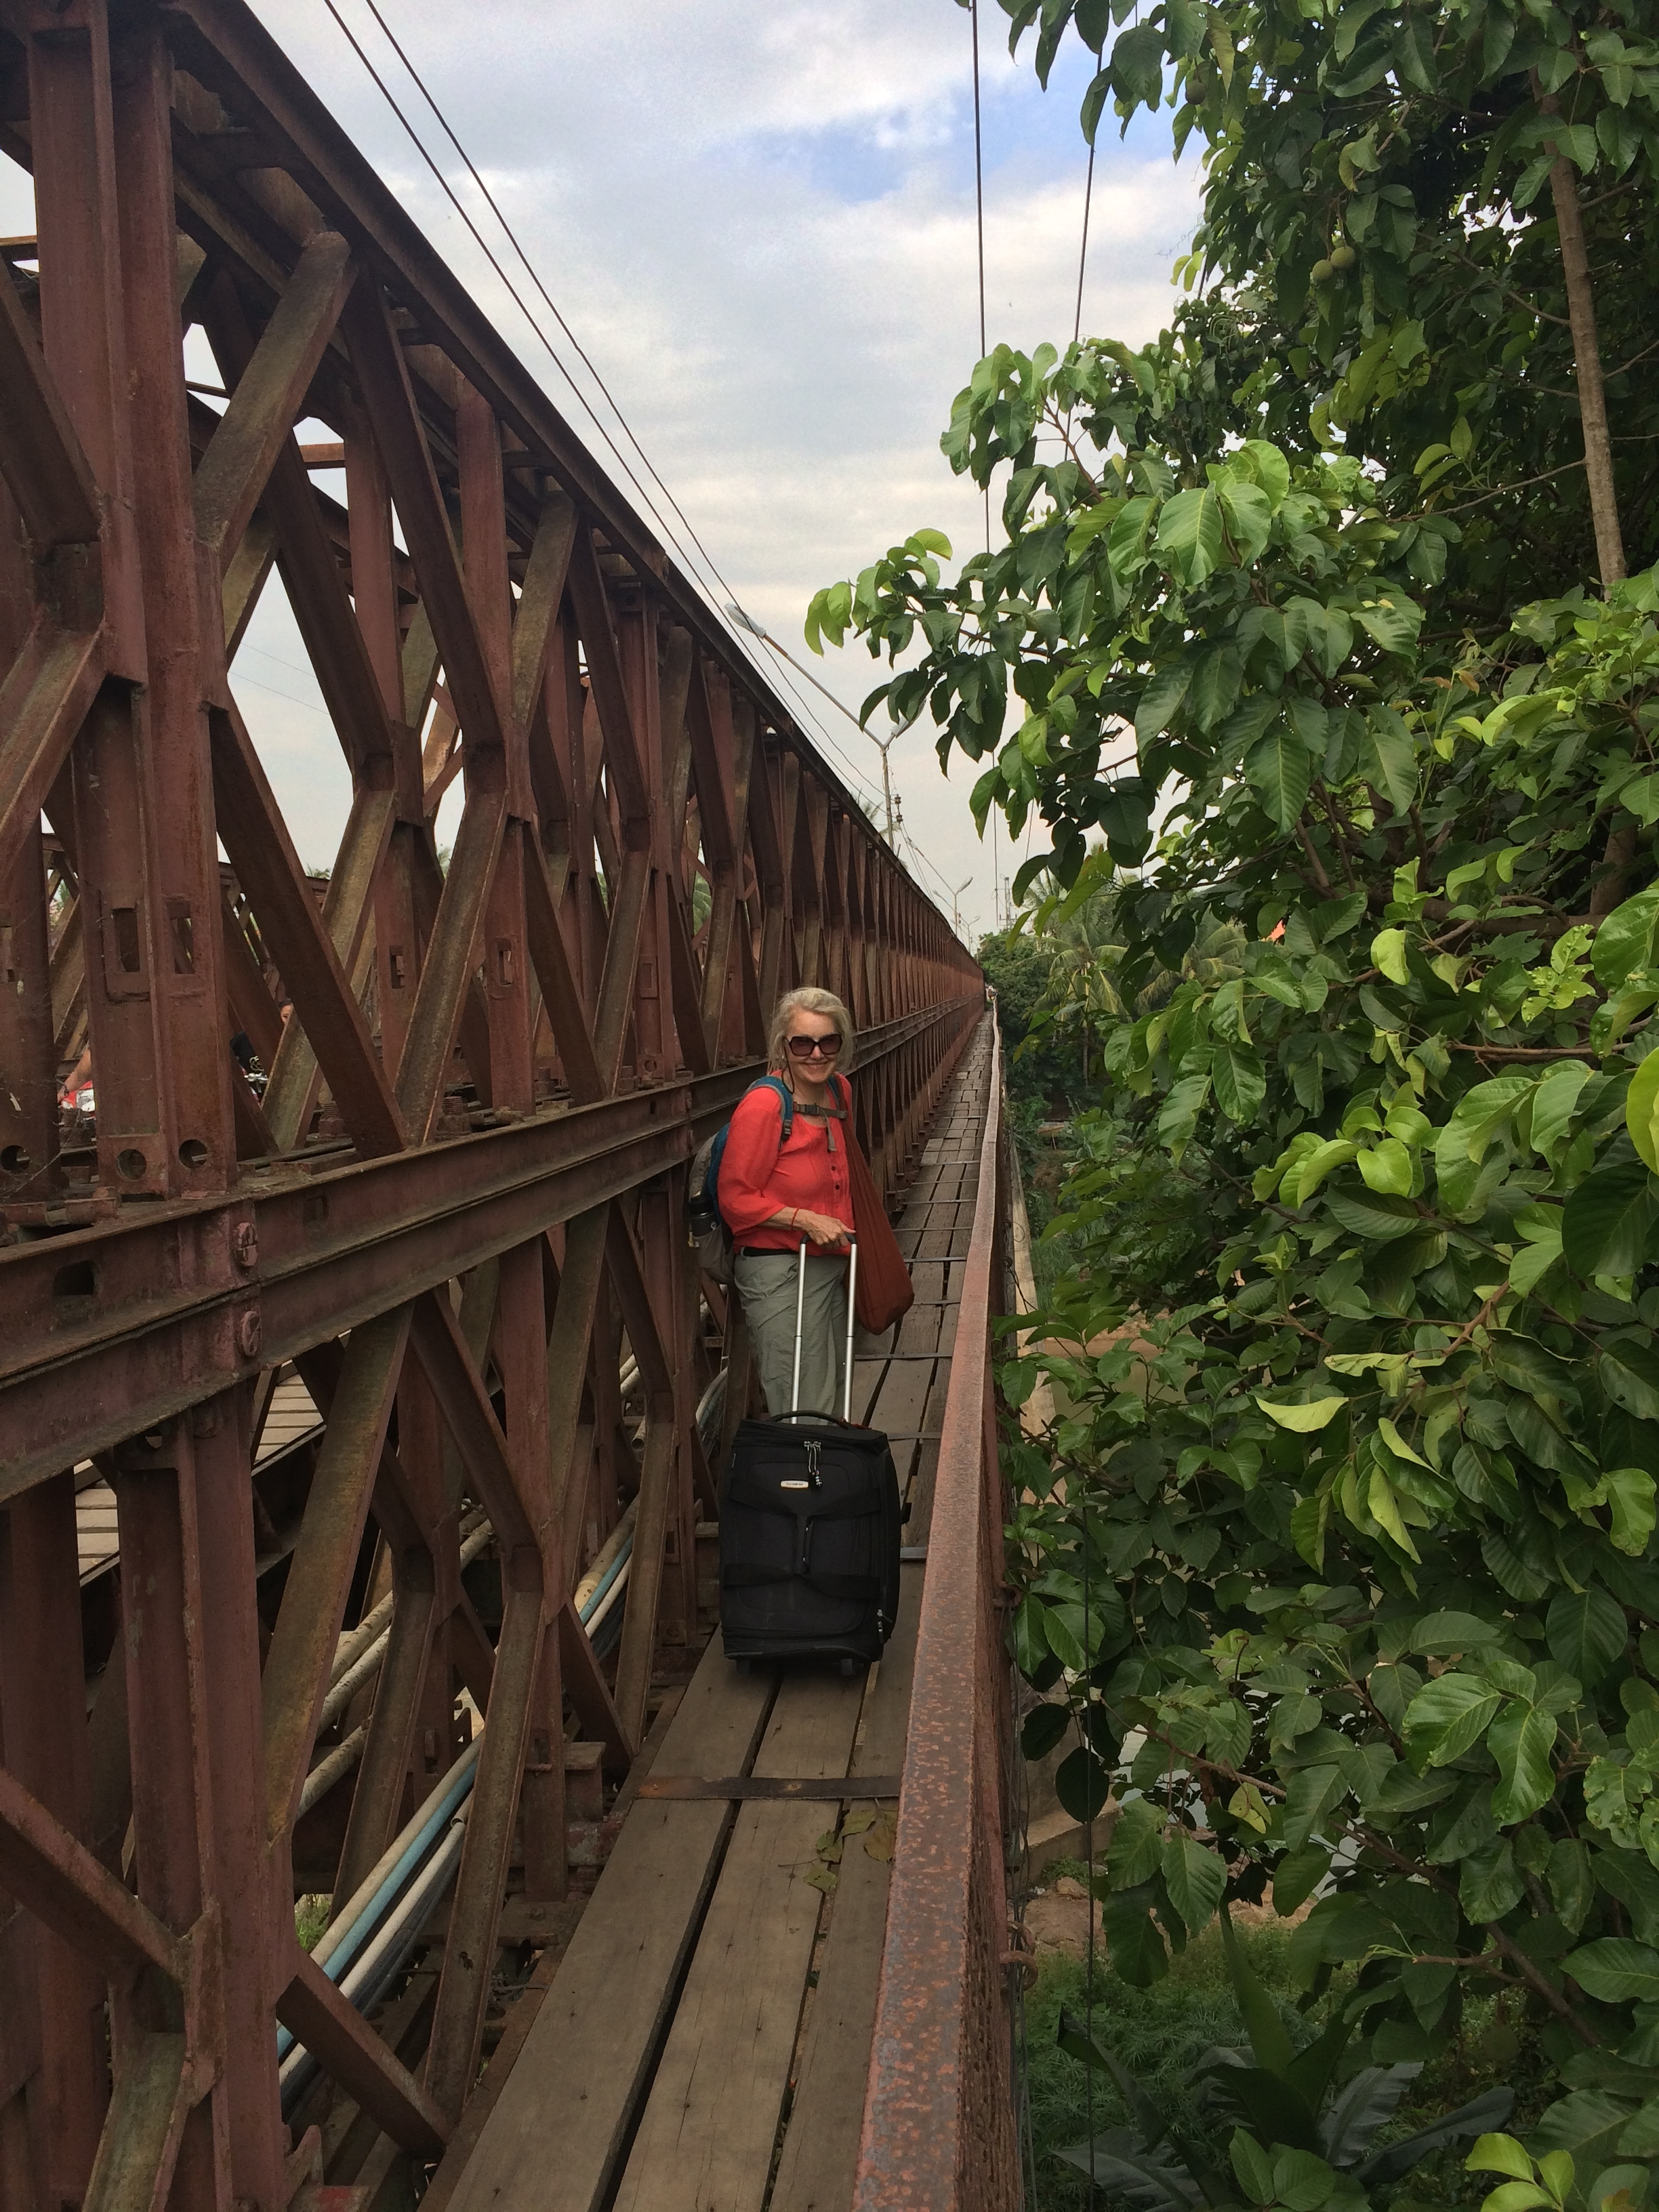 Our walk to the hotel including crossing this old bridge with our luggage